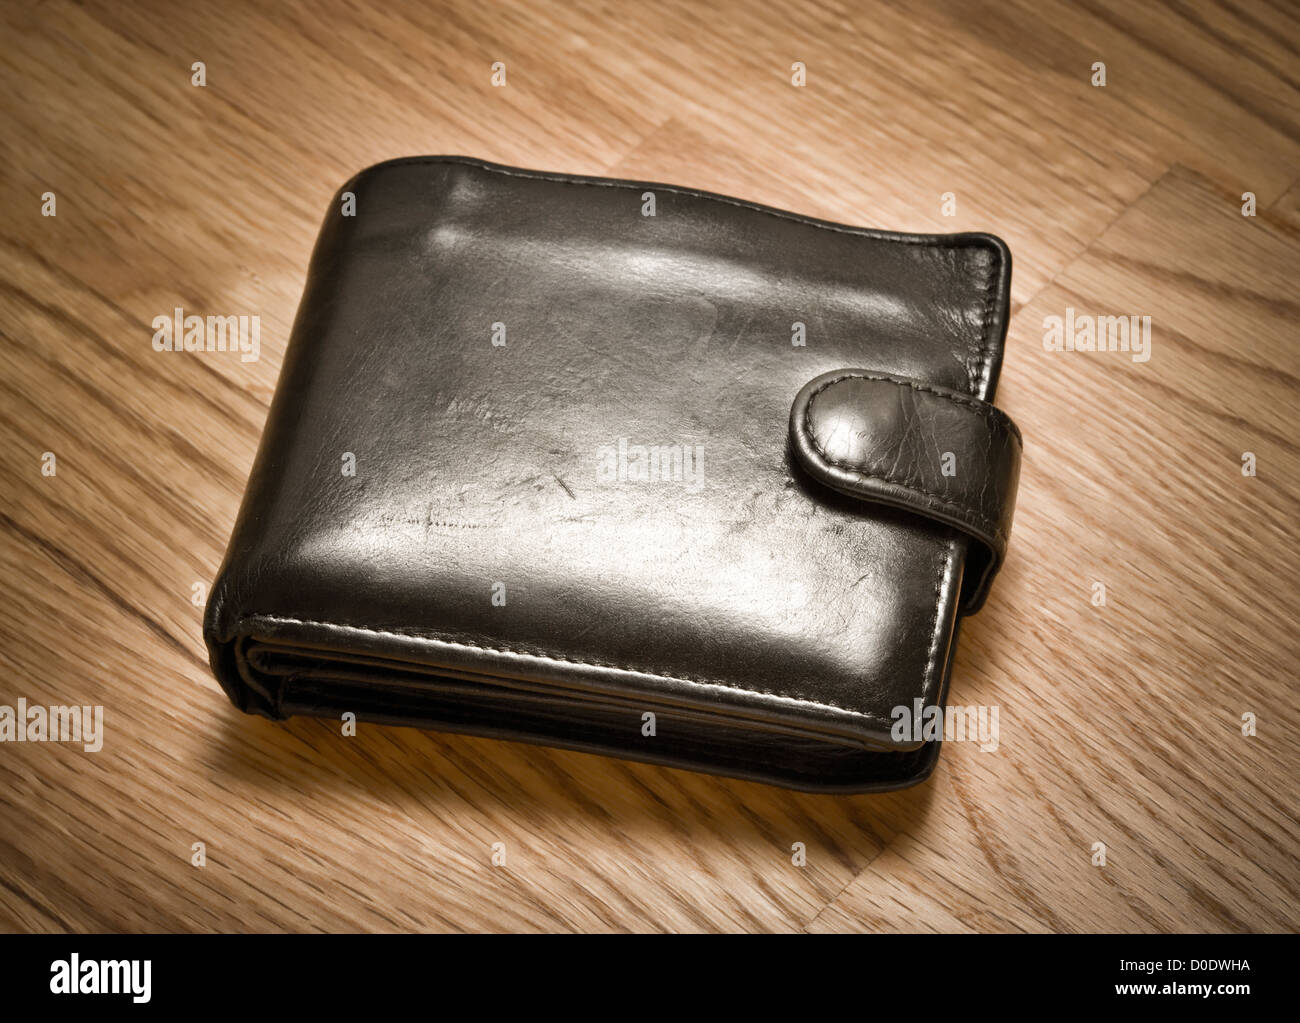 Wallet. - Stock Image